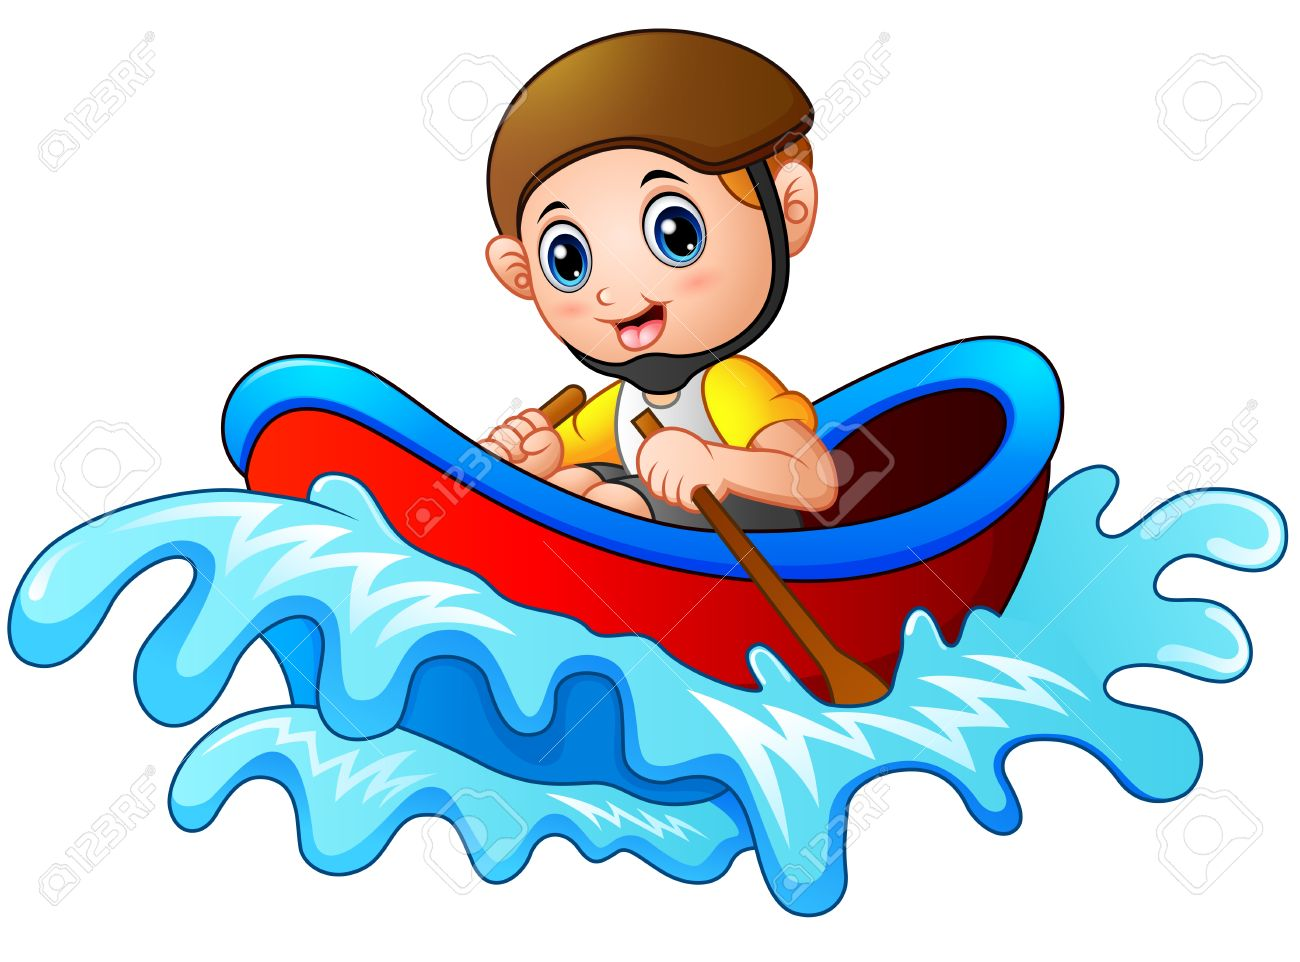 cartoon little boy rowing a boat on a white background royalty free